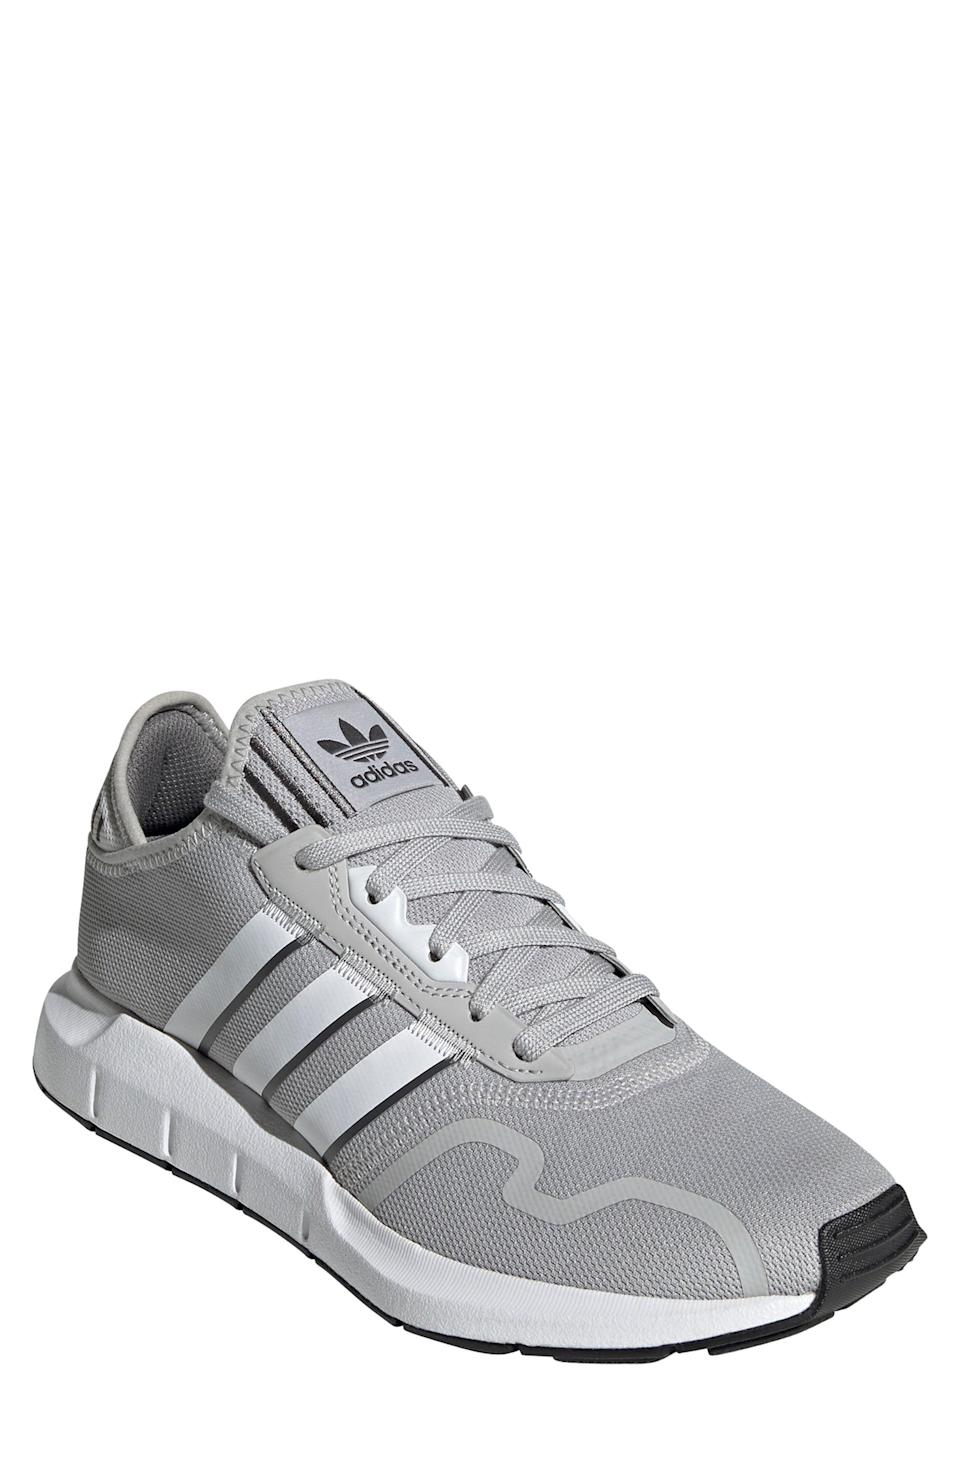 """<p><strong>ADIDAS</strong></p><p>nordstrom.com</p><p><a href=""""https://go.redirectingat.com?id=74968X1596630&url=https%3A%2F%2Fwww.nordstrom.com%2Fs%2Fadidas-swift-run-x-sneaker-men%2F5747490&sref=https%3A%2F%2Fwww.bestproducts.com%2Ffitness%2Fg37158206%2Fnordstroms-anniversary-sale-best-sneakers%2F"""" rel=""""nofollow noopener"""" target=""""_blank"""" data-ylk=""""slk:BUY IT HERE"""" class=""""link rapid-noclick-resp"""">BUY IT HERE</a></p><p><del>$85<br></del><strong>$52.90</strong></p><p>Want to take a walk down memory lane? Adidas upgraded this '80s-inspired pair with a pull-on sock upper and EVA cushioning.</p>"""